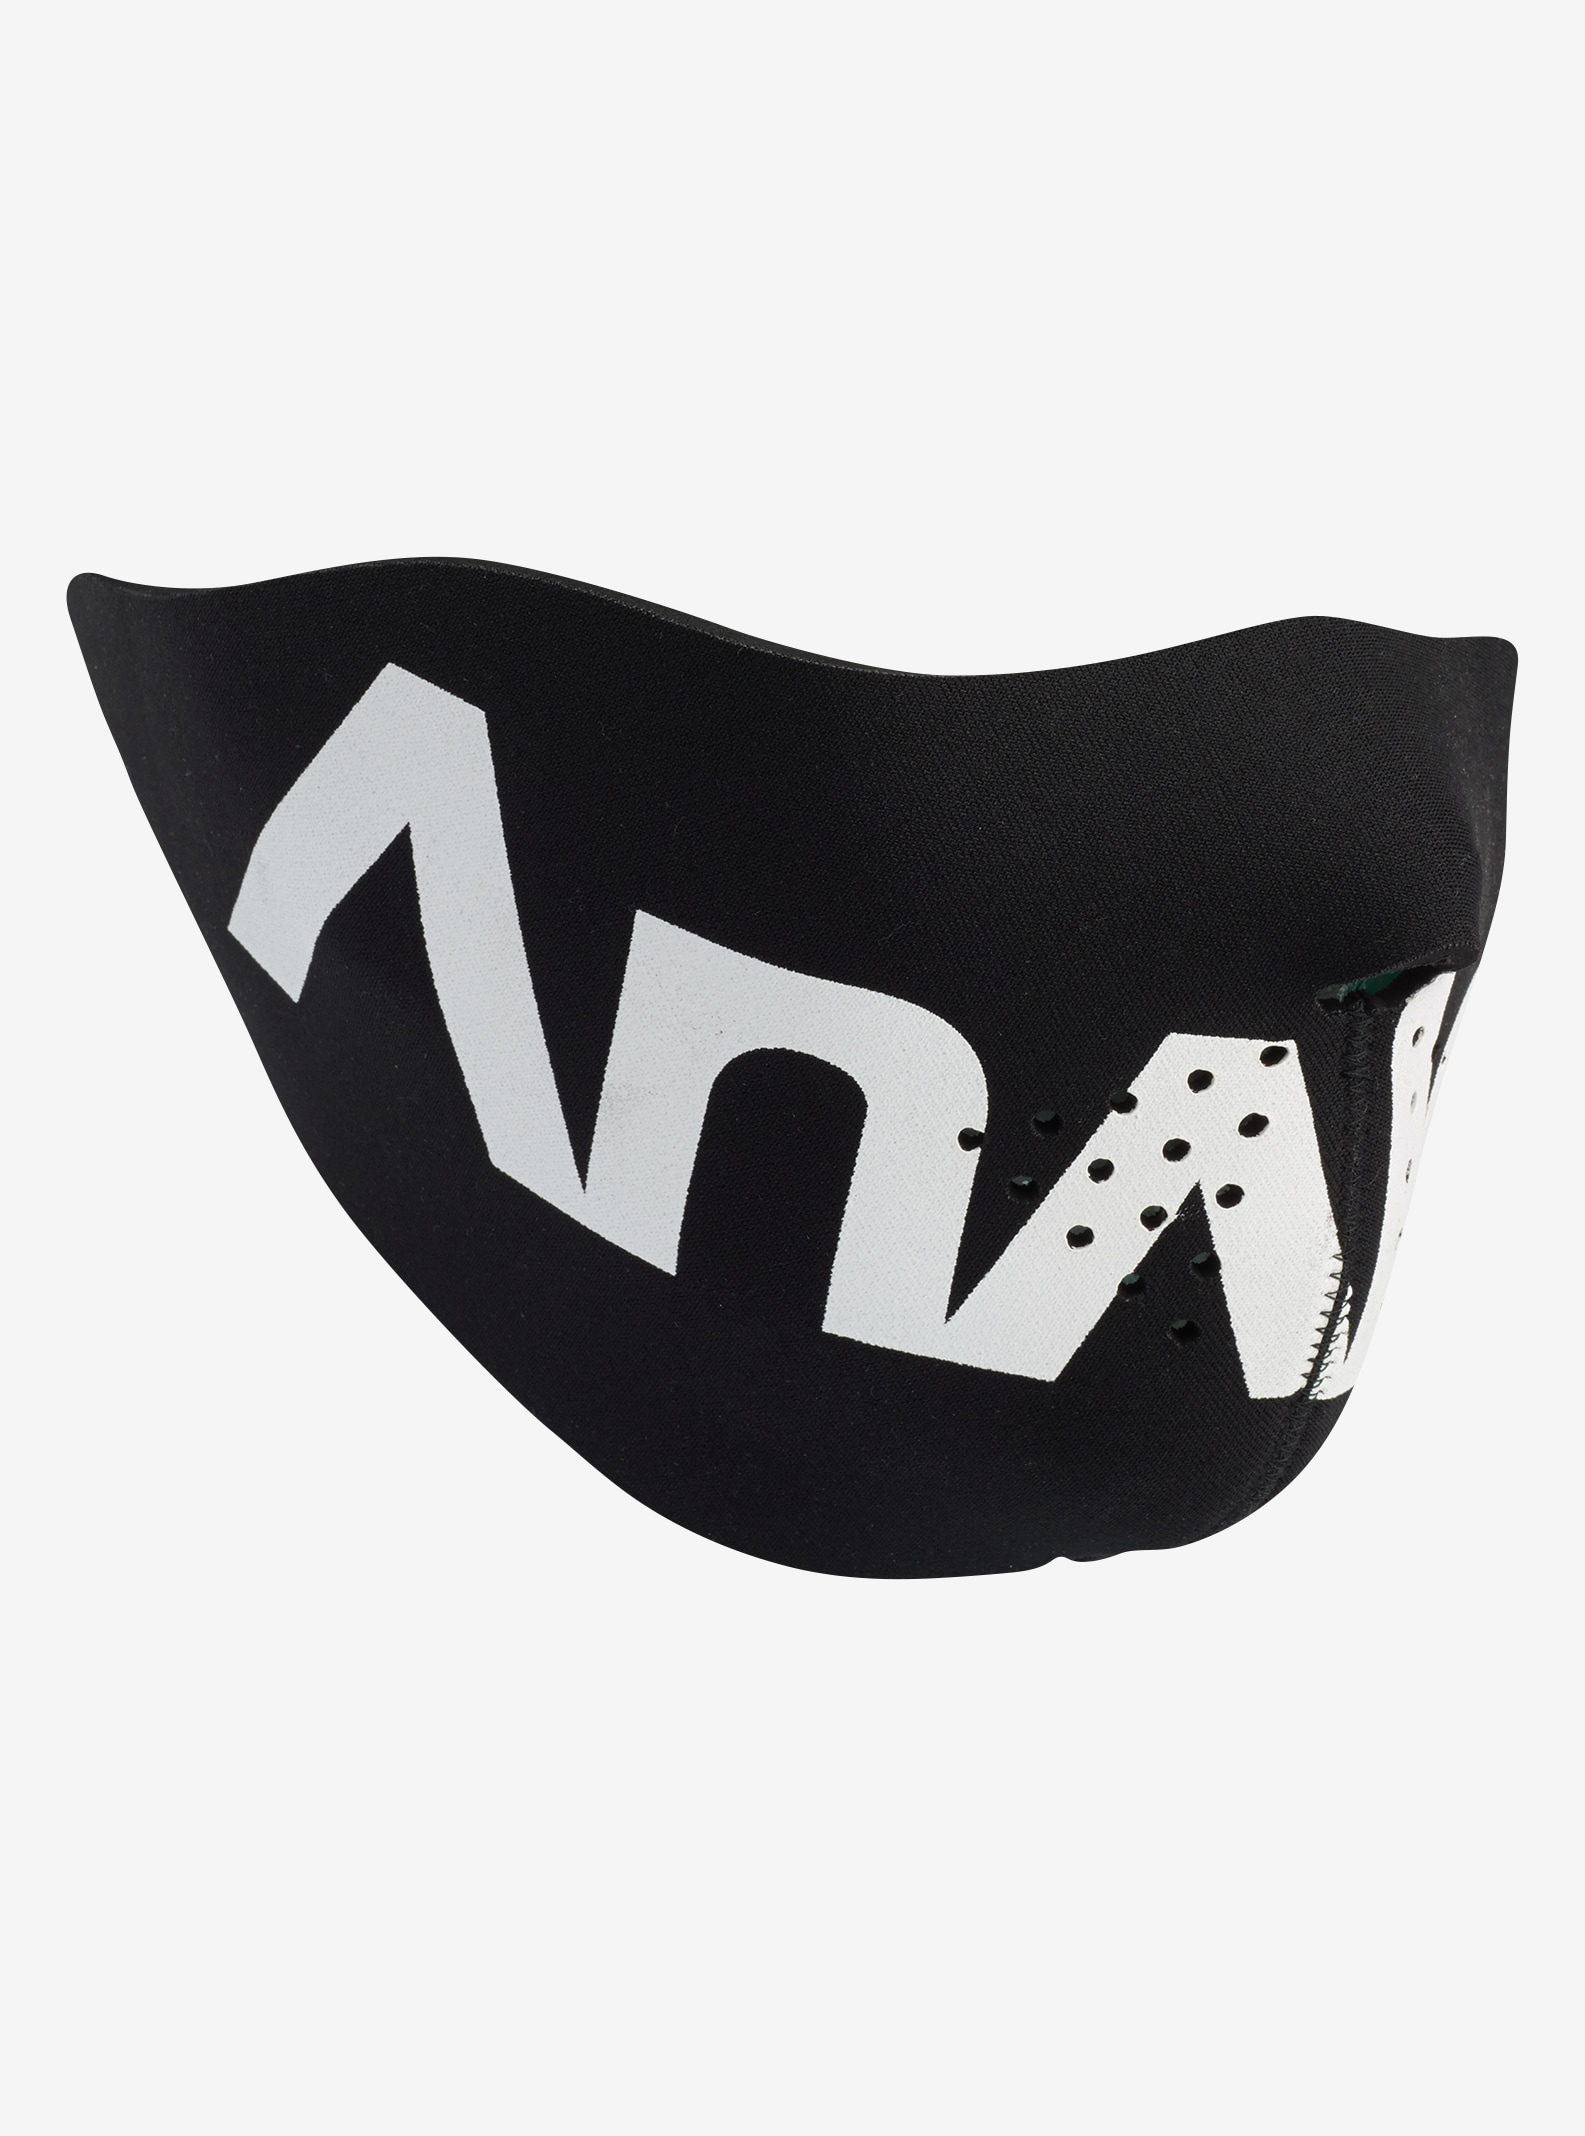 Analog Idle Face Mask shown in True Black